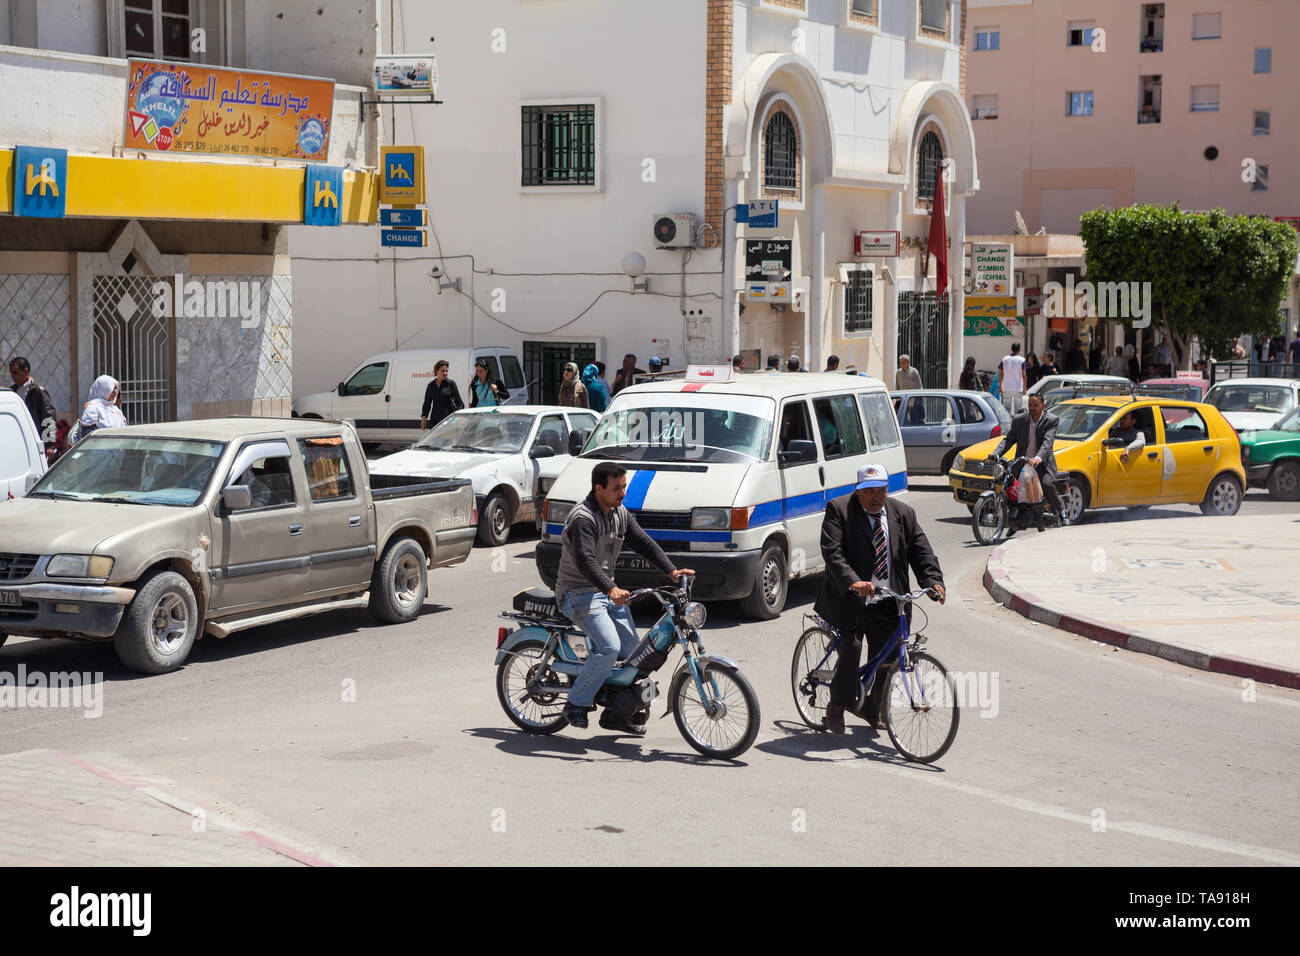 TUNISIA-CIRCA MAY, 2012: Road traffic is on the streets of Tunisian provincial town. Passengers cars, motorcycles and bikes drive on roundabout roadwa Stock Photo